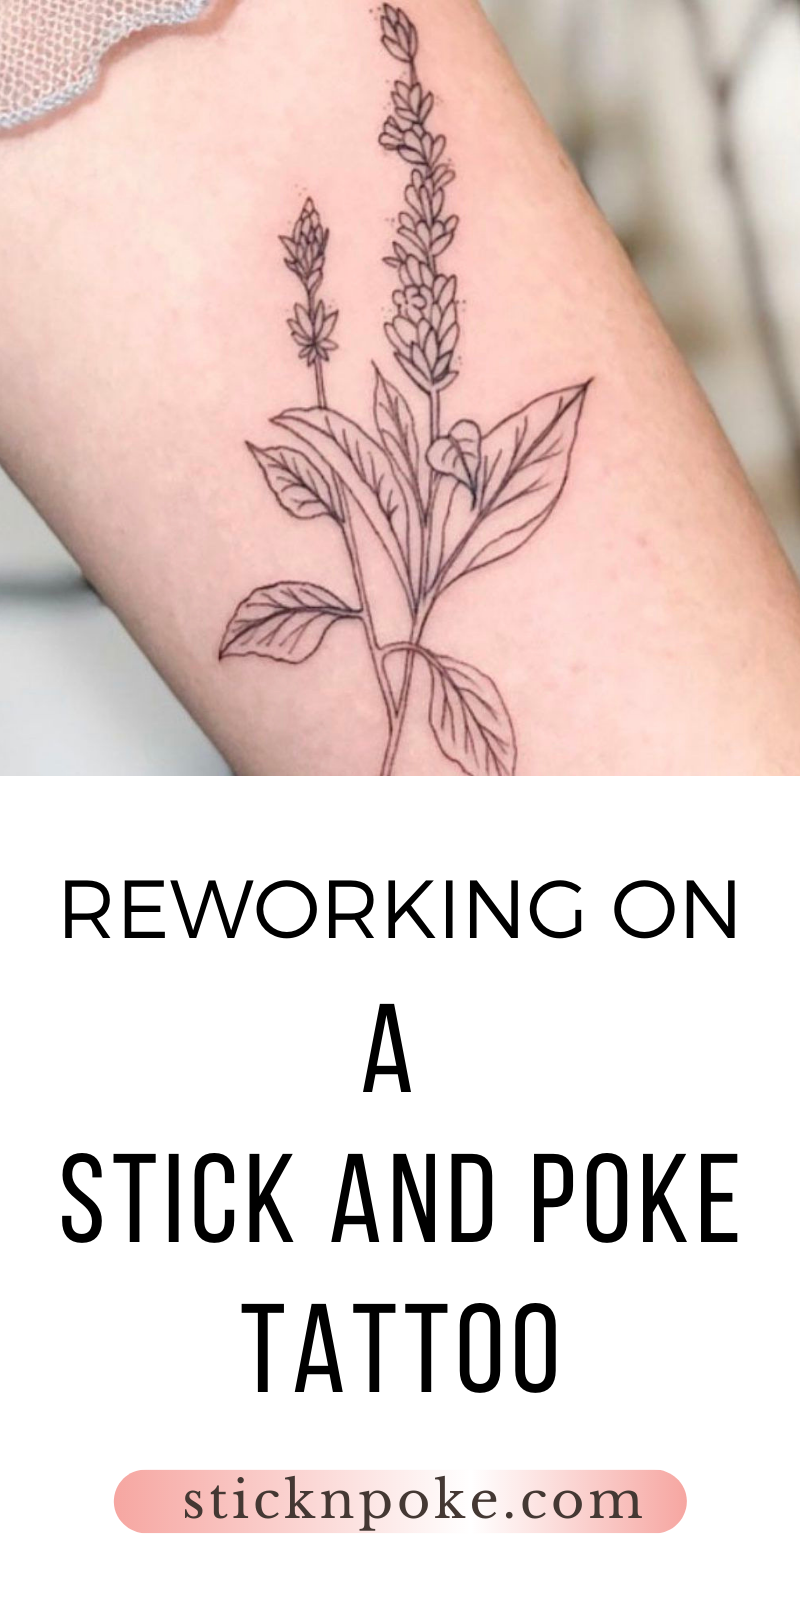 Photo of Reworking on a Stick and Poke Tattoo